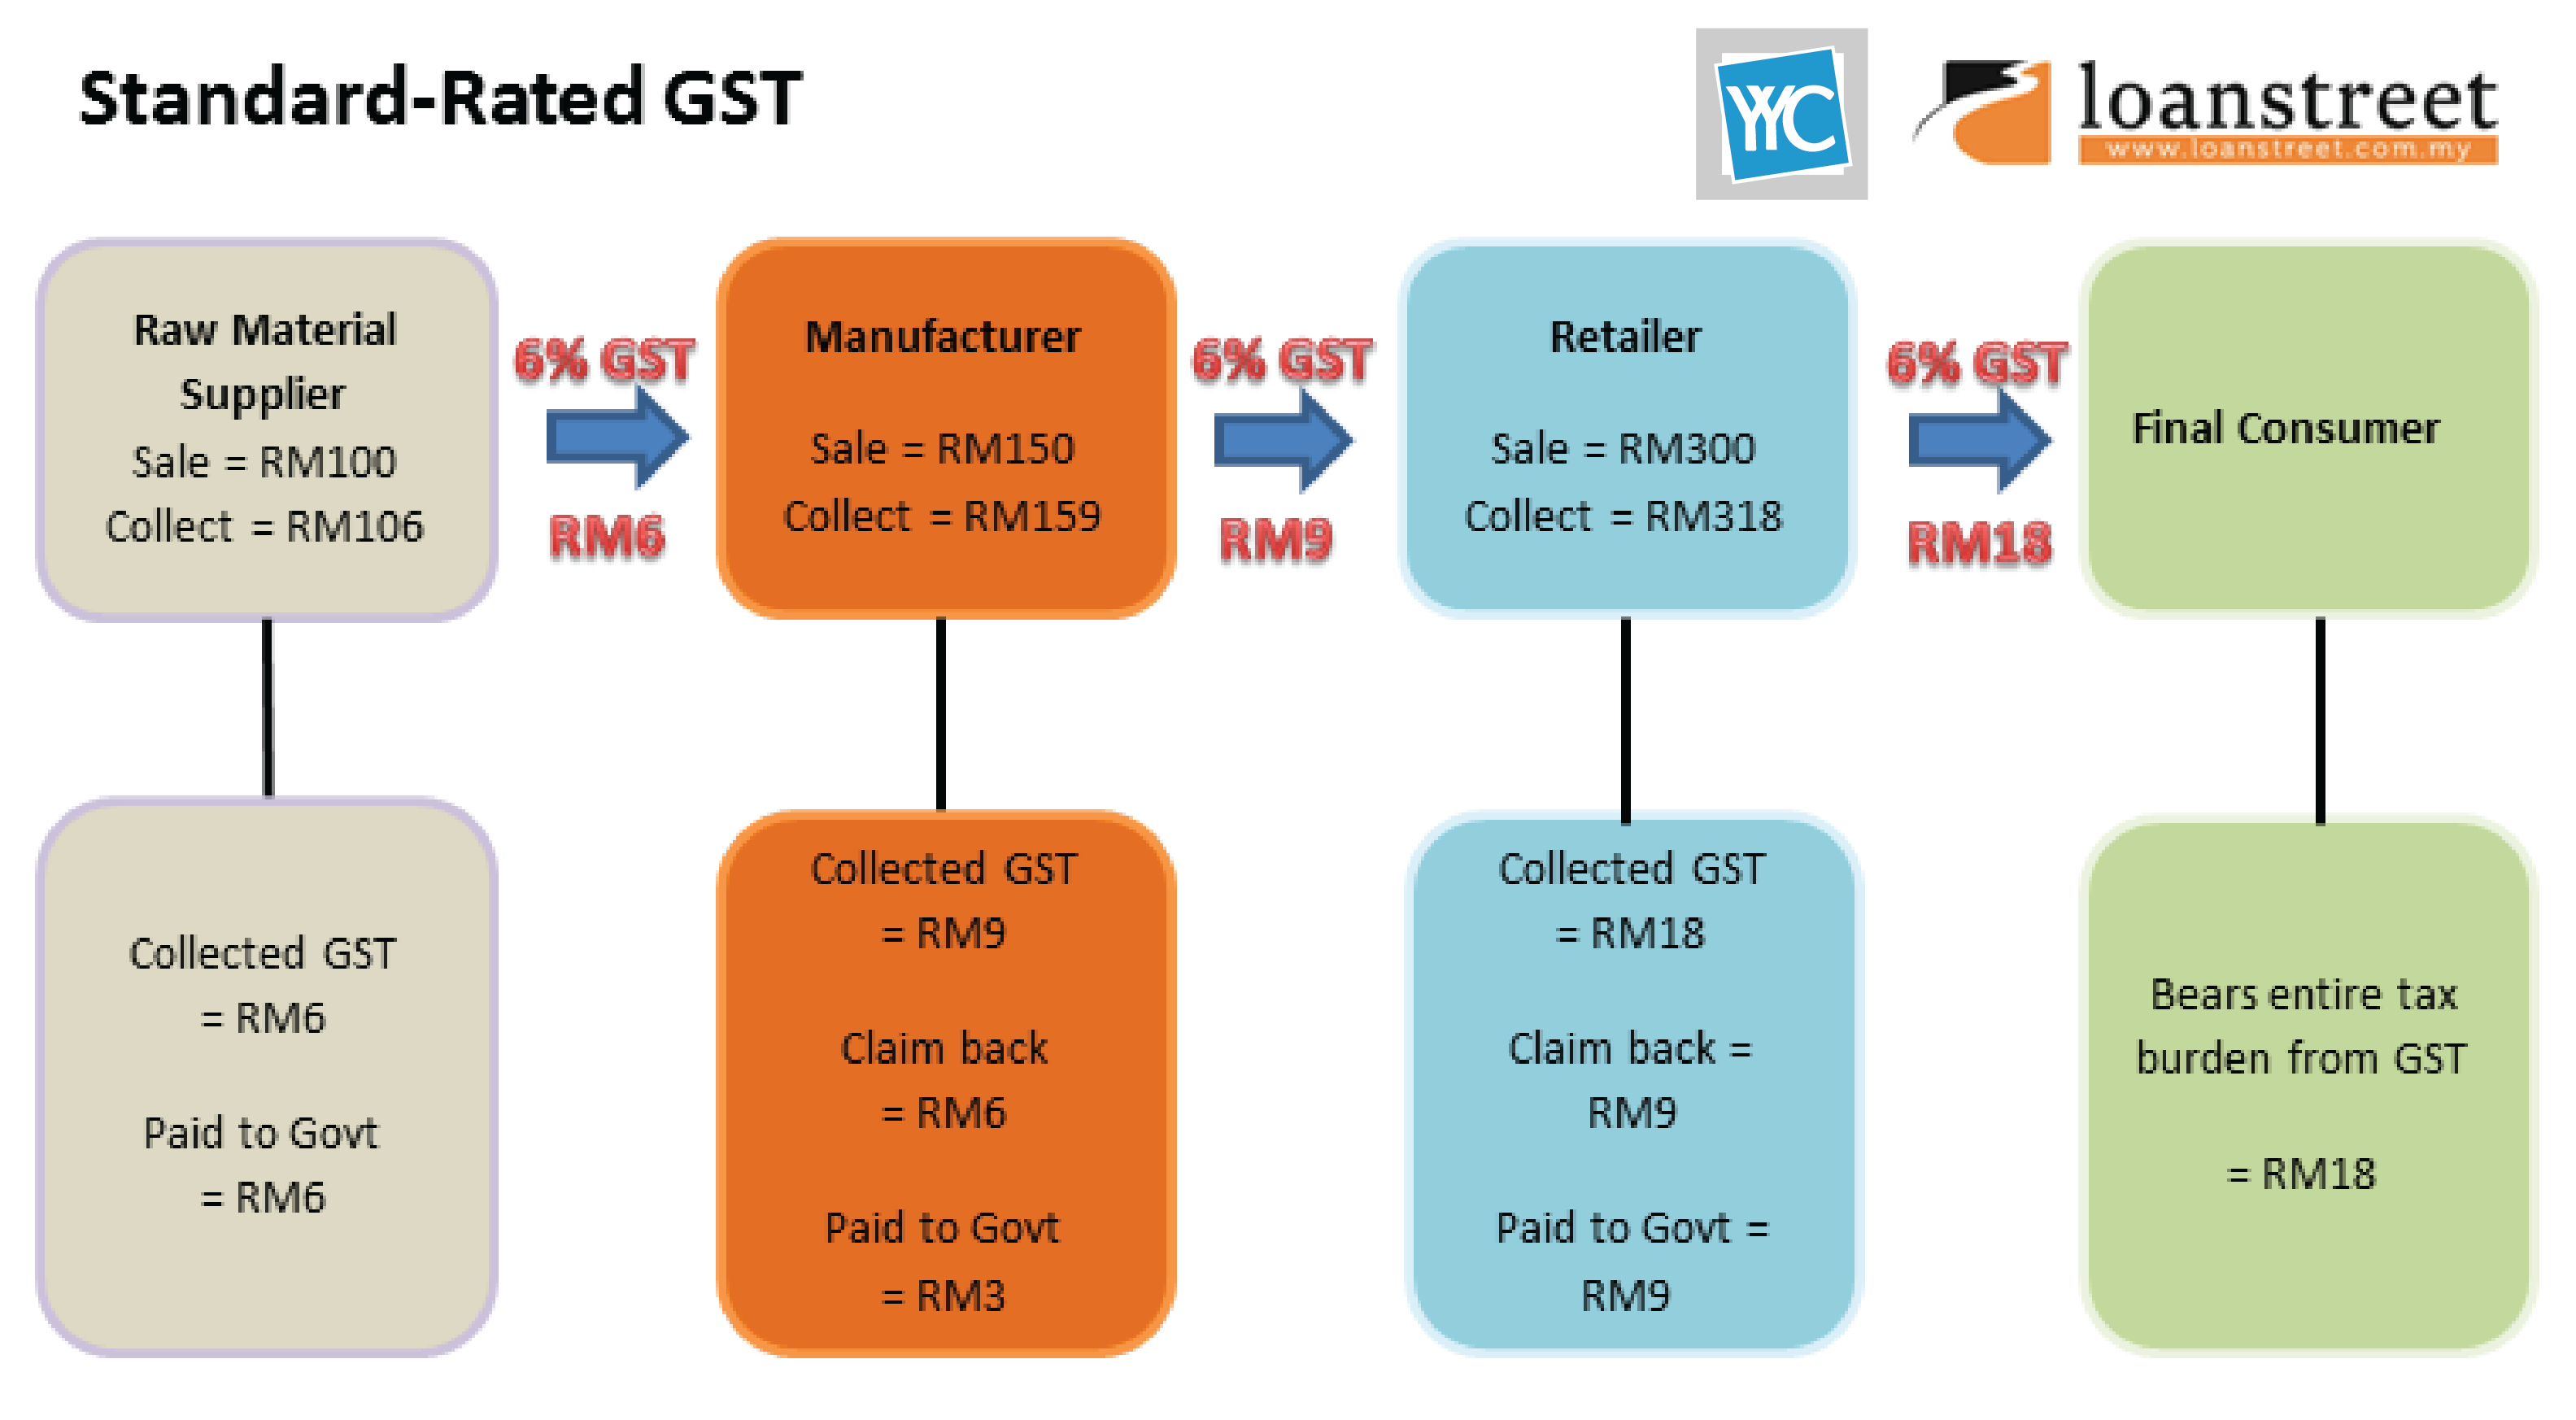 Standard-rated GST